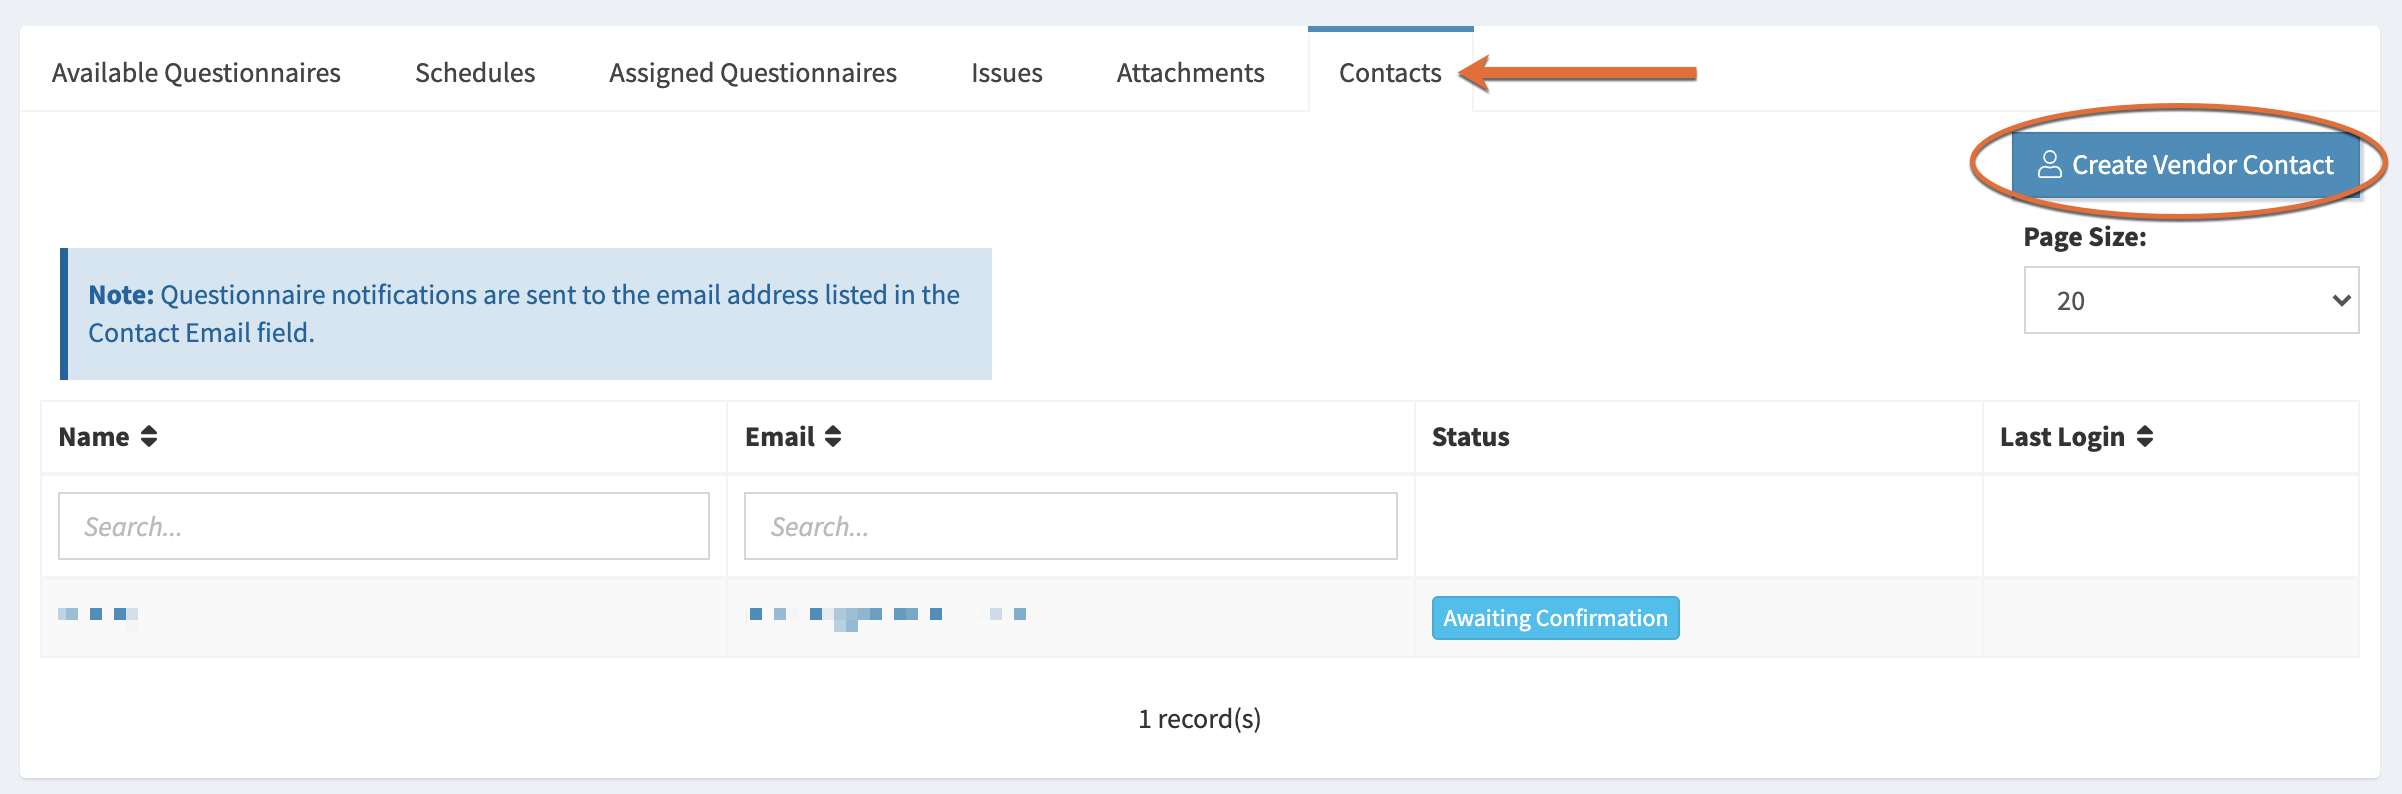 Image of the Contacts tab on the Vendor Details page, with a circle around the Create Vendor Contact tab.